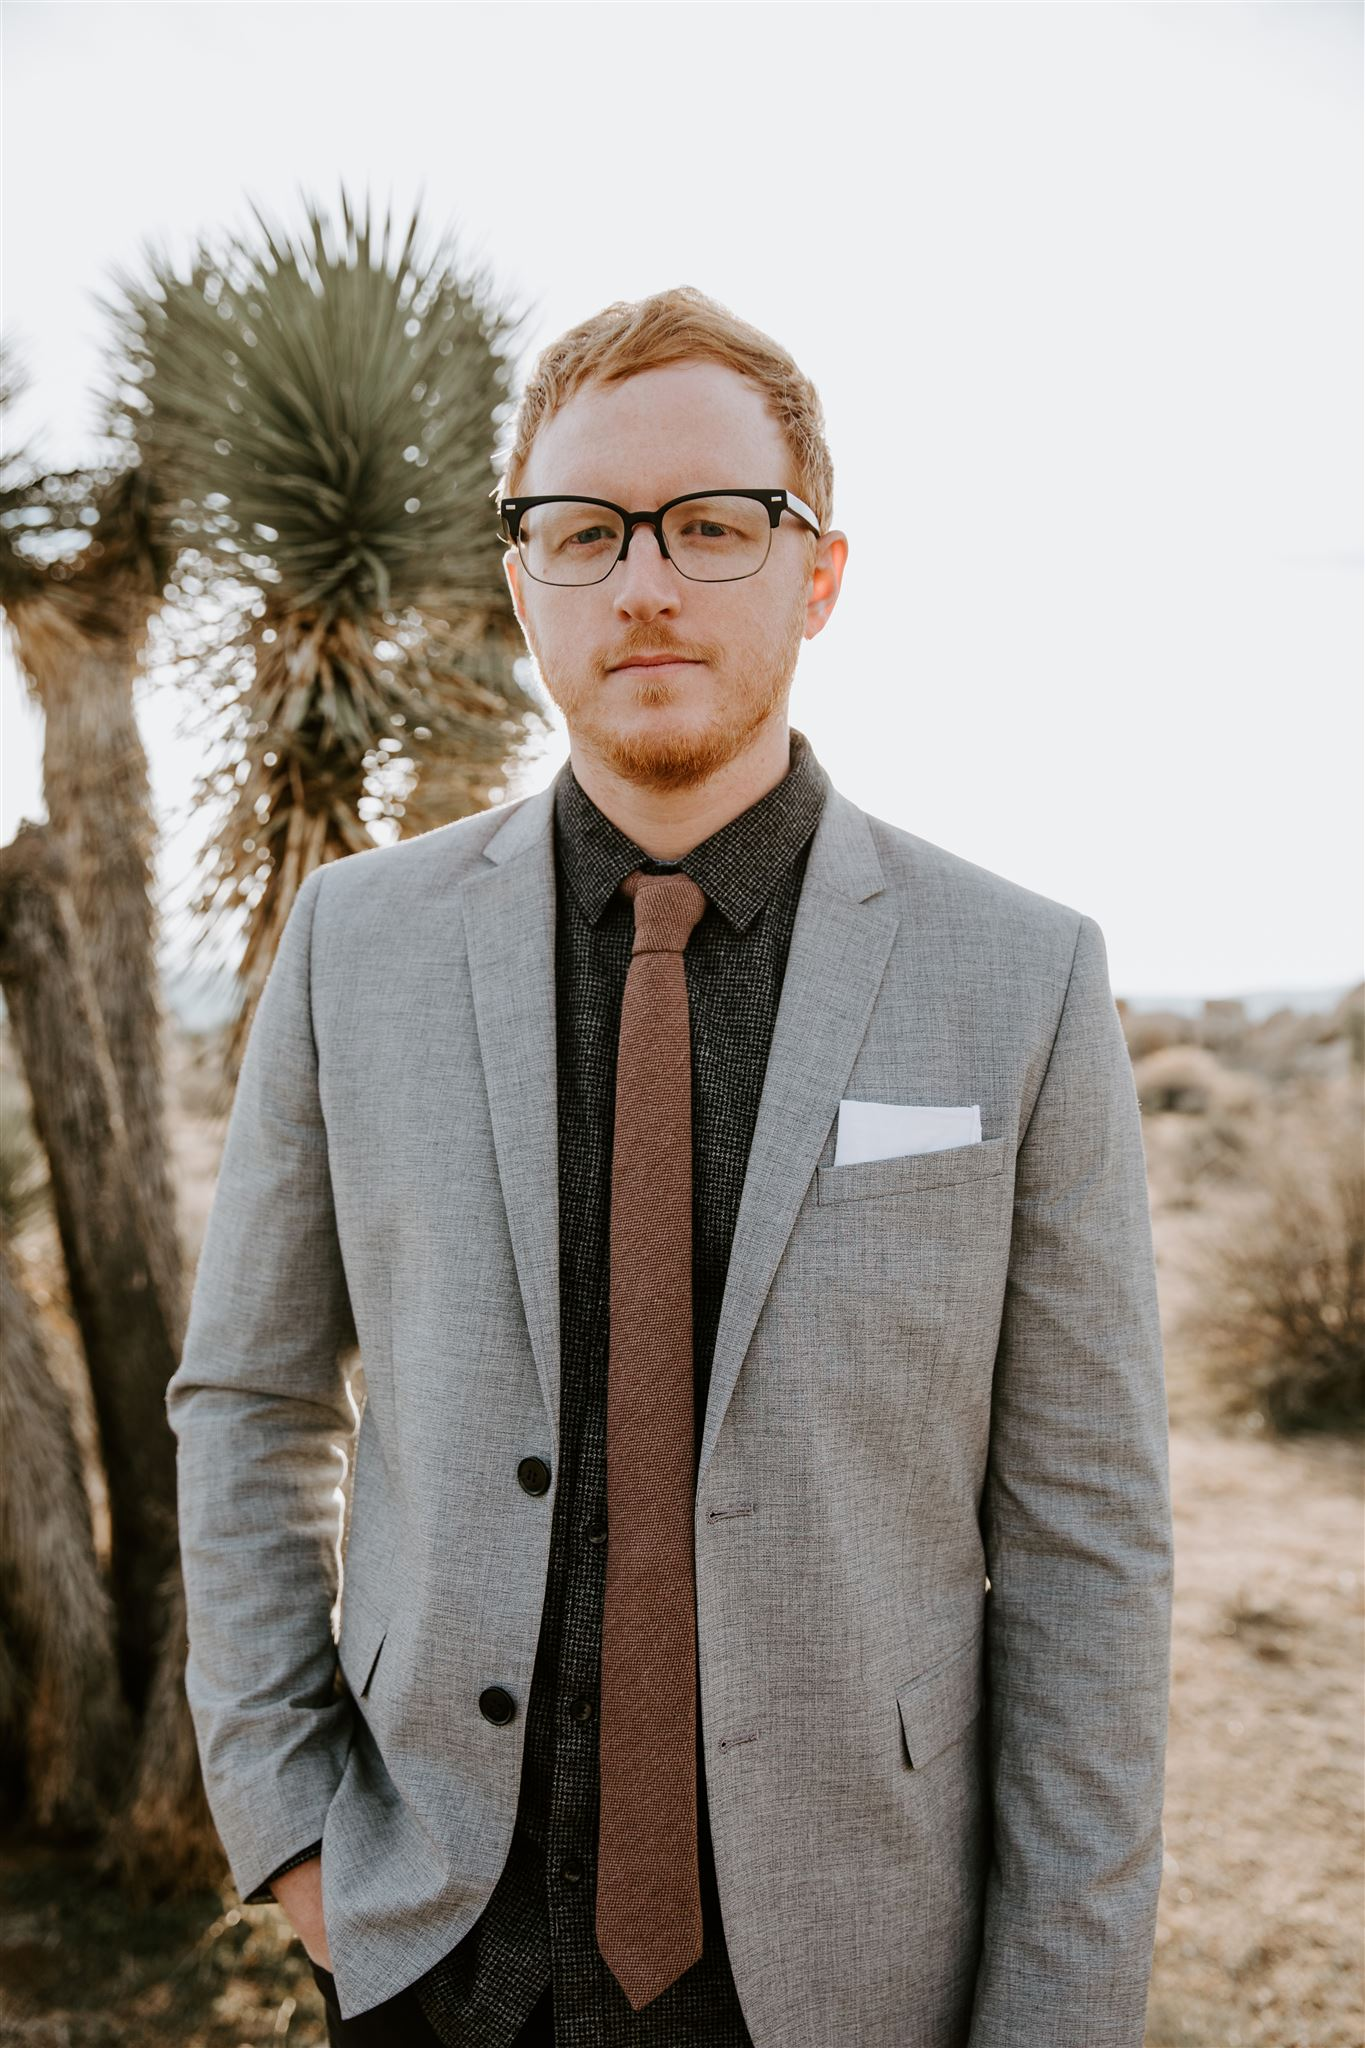 Joshua Tree CA Elopement Wedding  Photographer May Iosotaluno 13.jpg